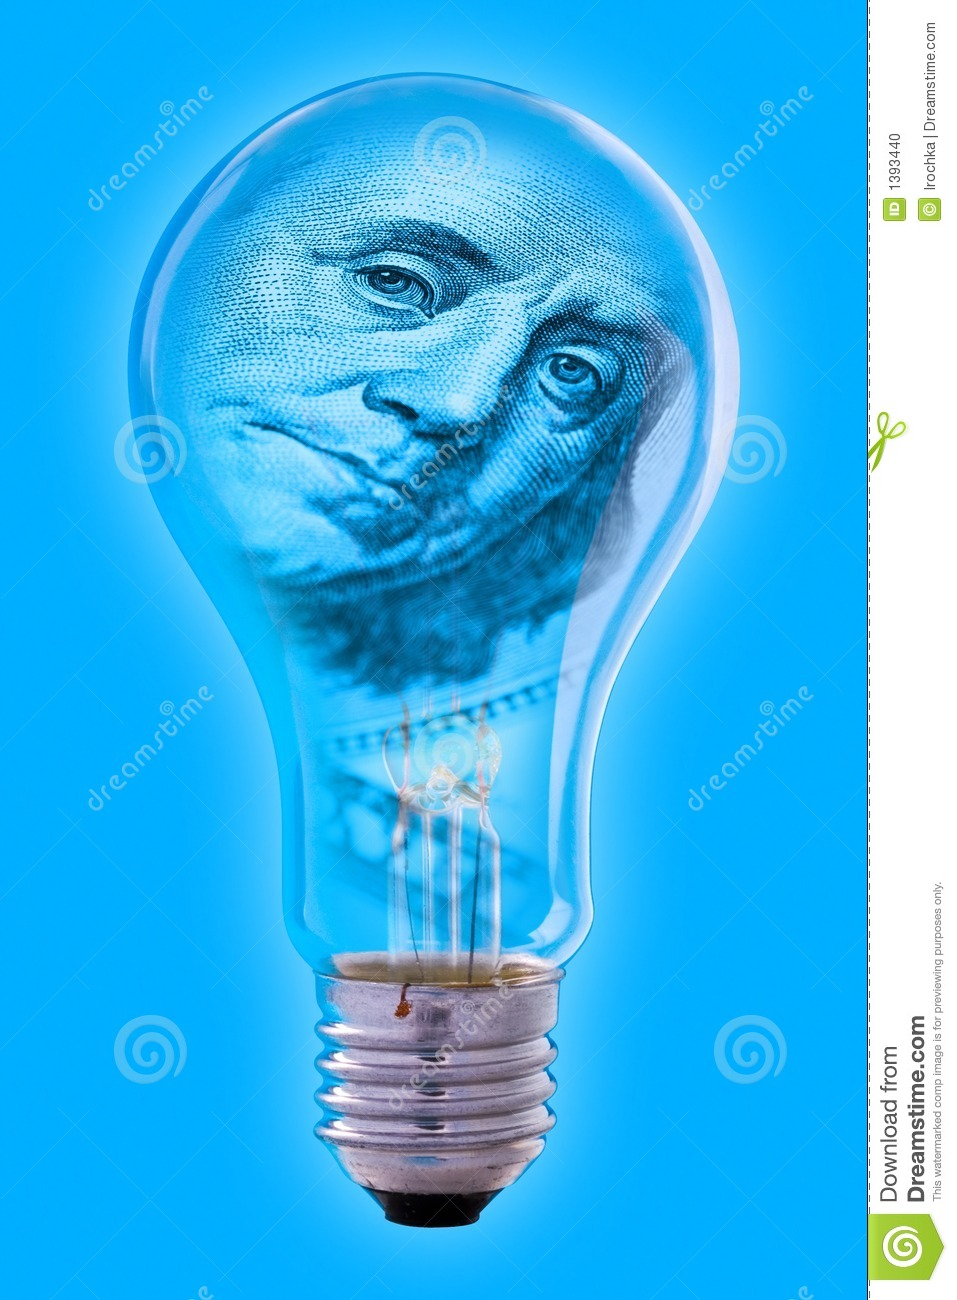 Benjamin Franklin Light Bulb